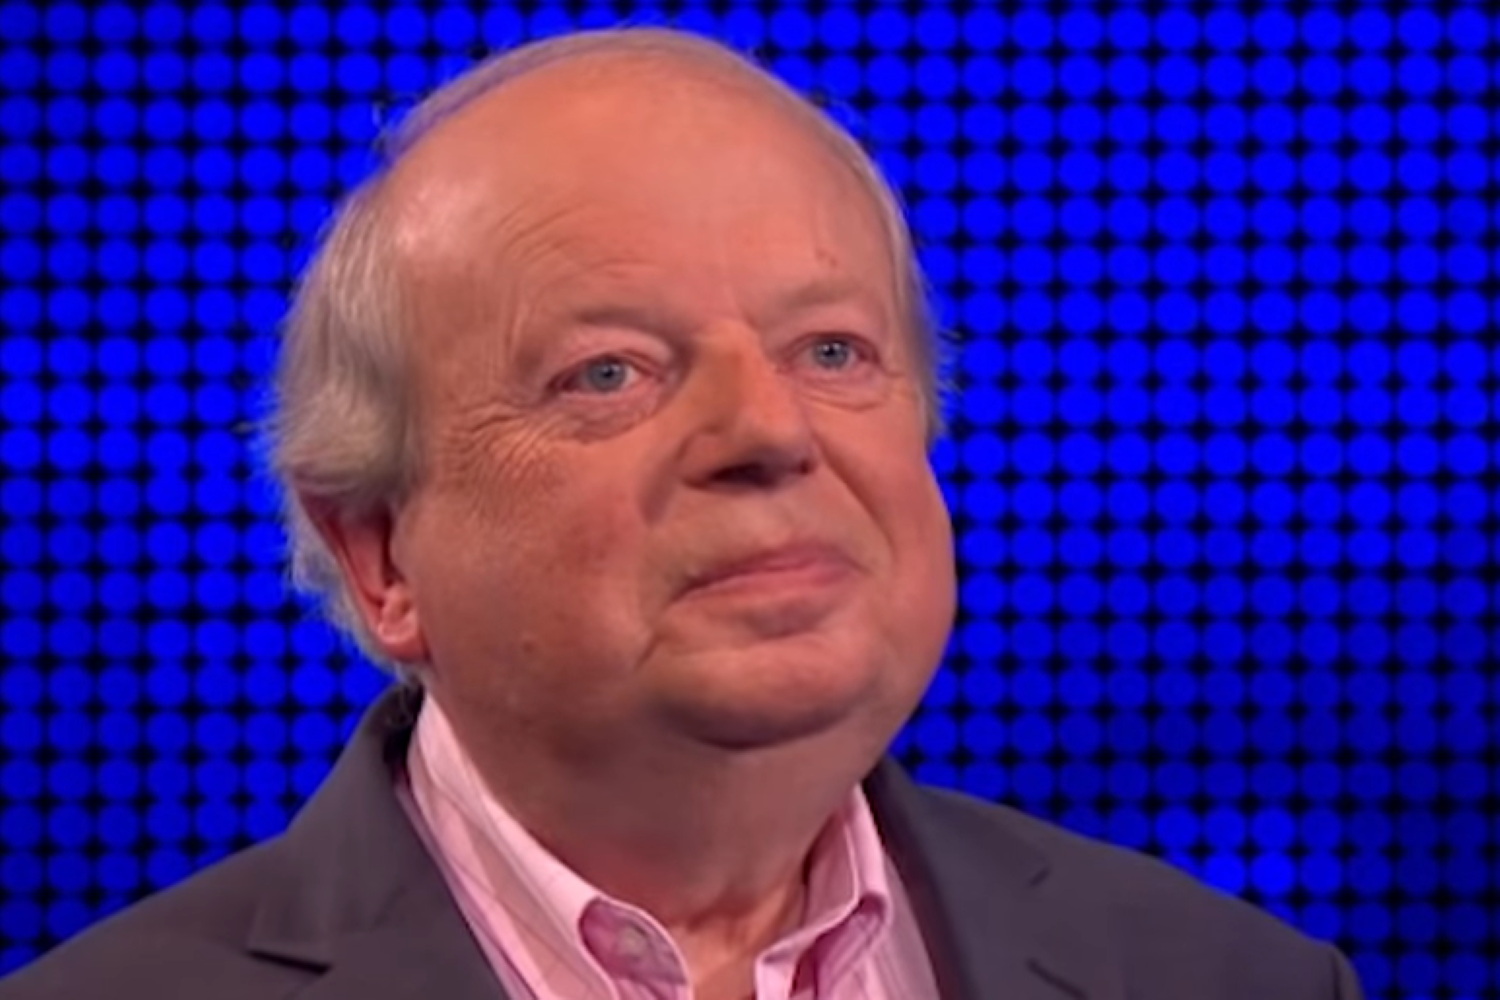 The Chase viewers can't believe 'painful' performance of John Sergeant